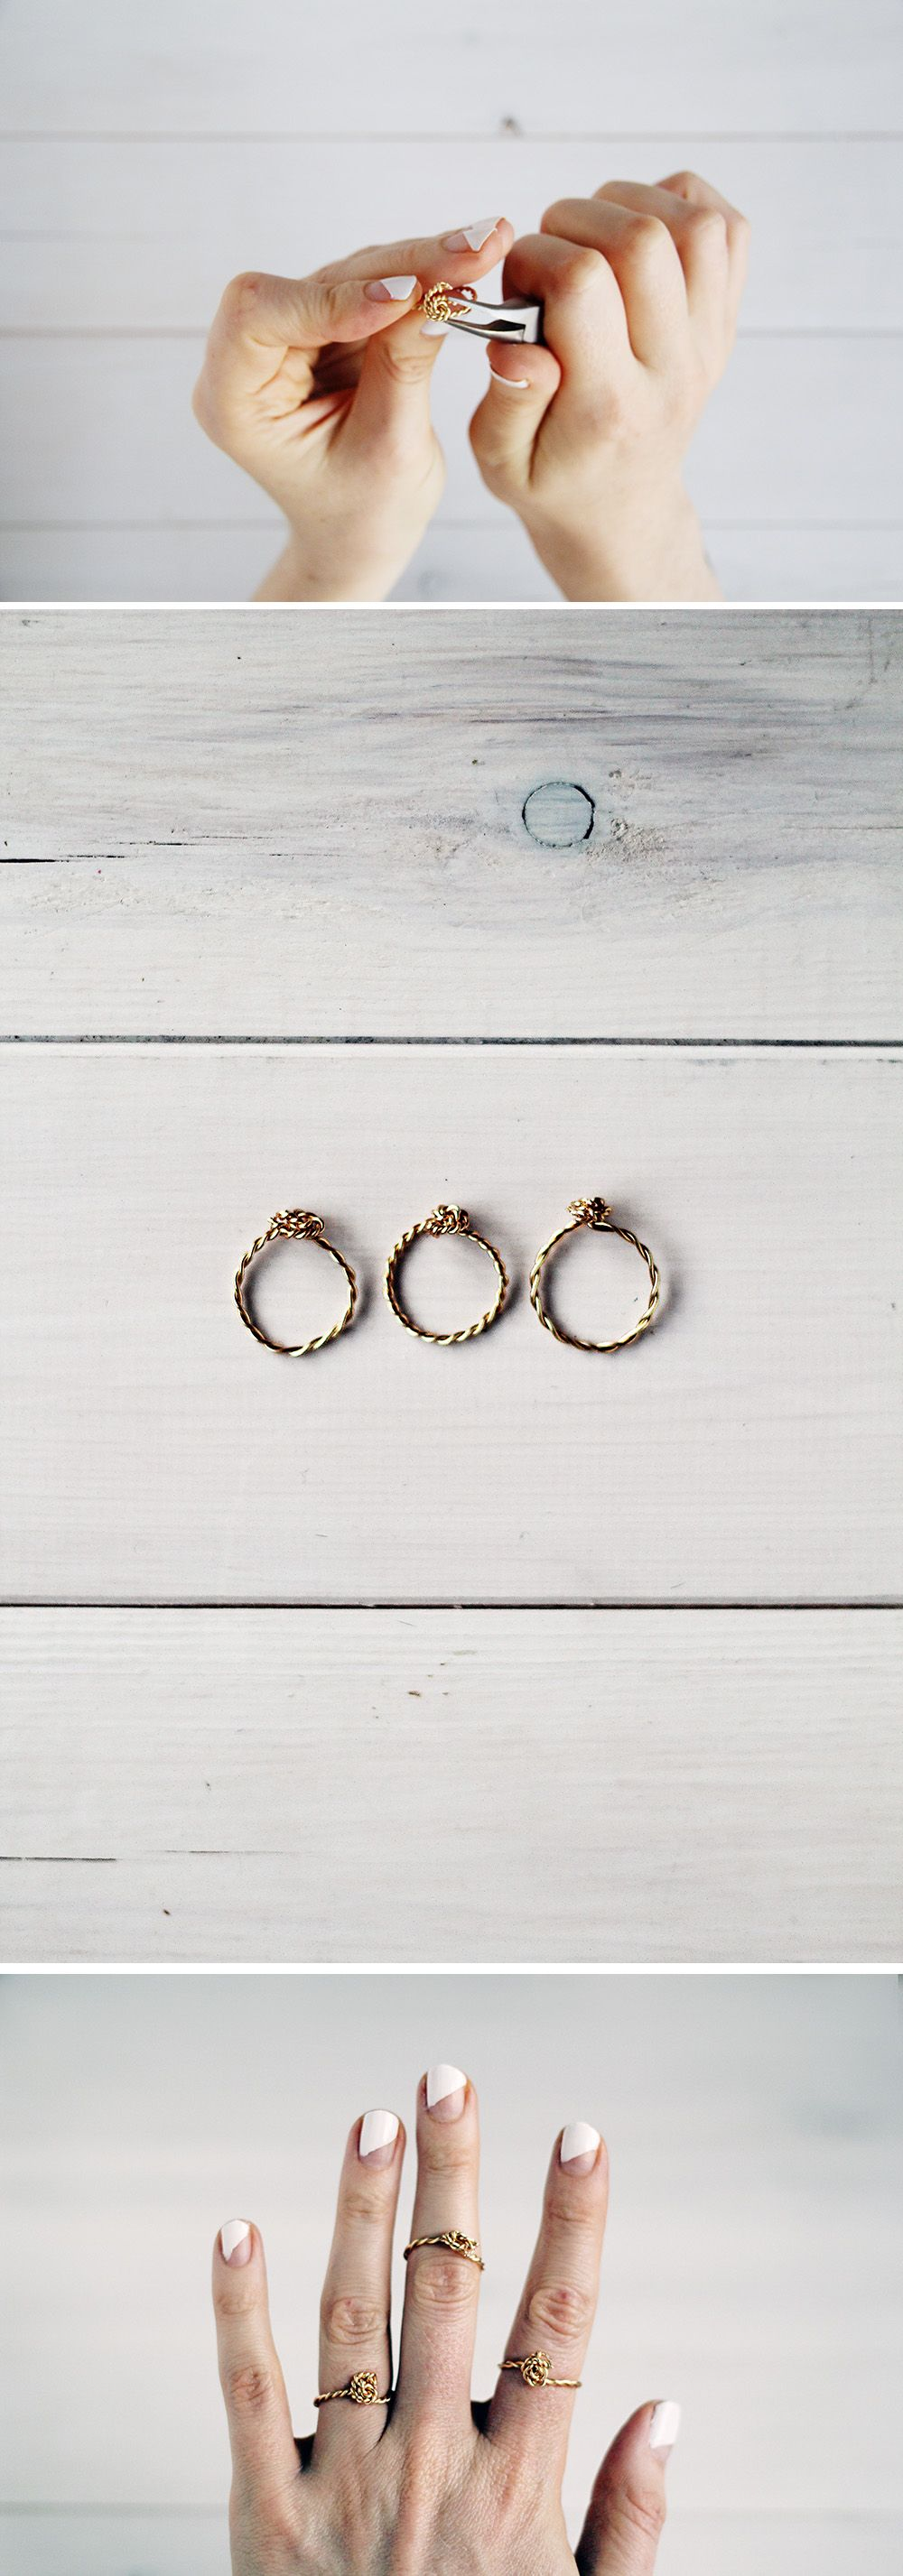 DIY Twisted Rings | Pinterest | Wire rings tutorial, Ring tutorial ...